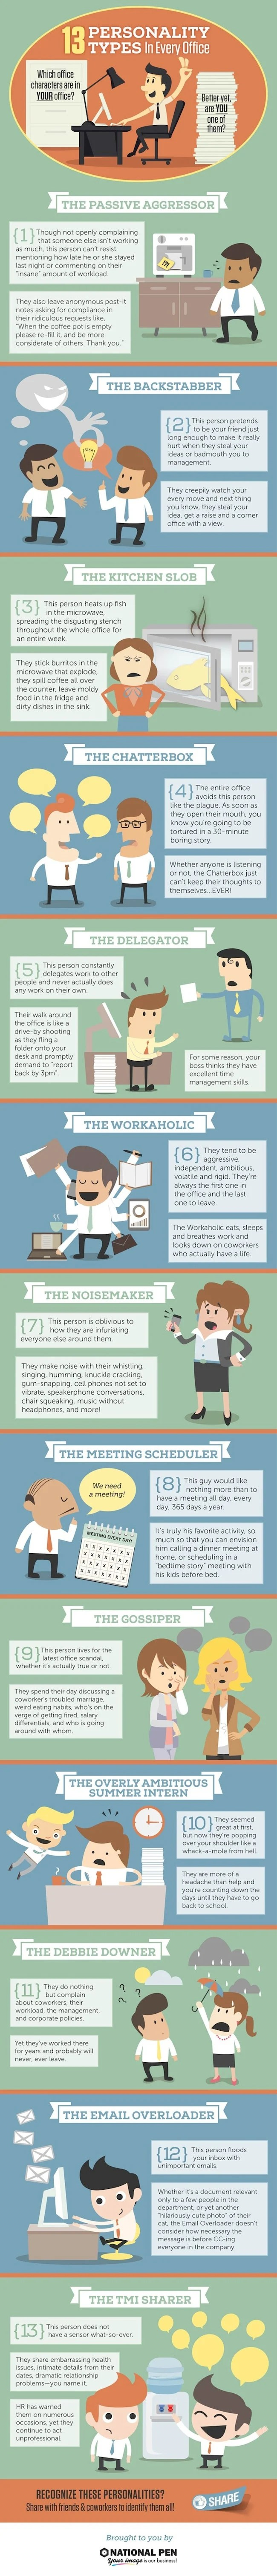 office-personalities